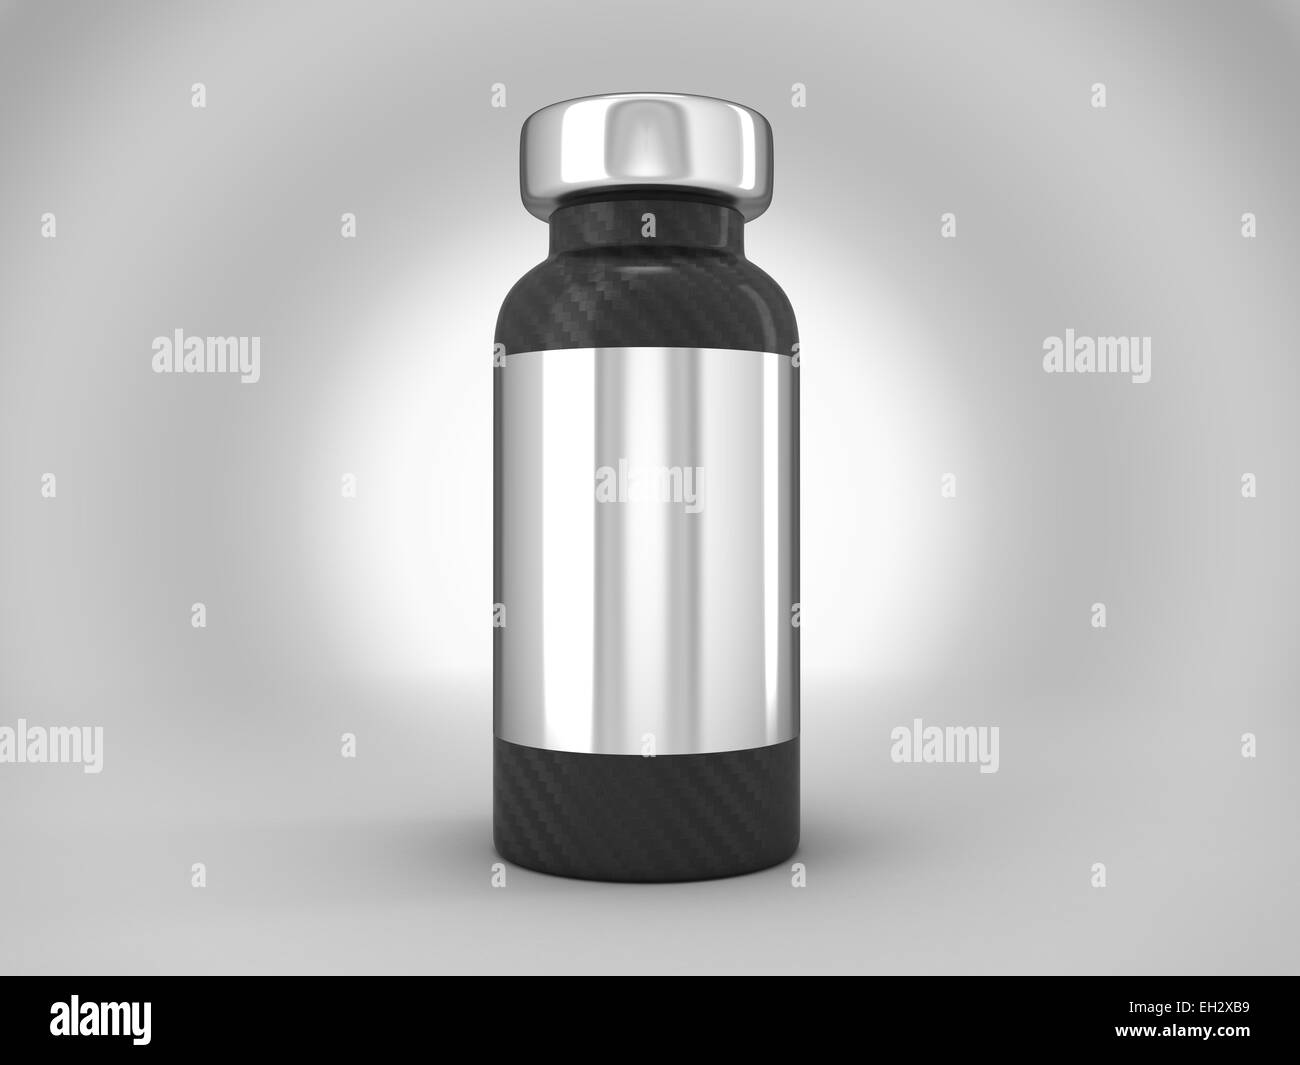 Carbon fiber ampoule with silver sticker over spot light background - Stock Image